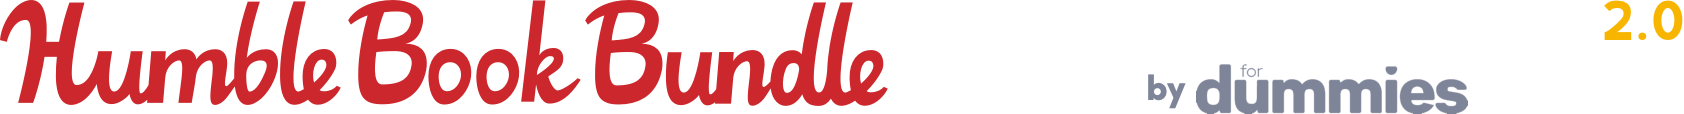 Humble Book Bundle: Land a Tech Job 2.0 by For Dummies